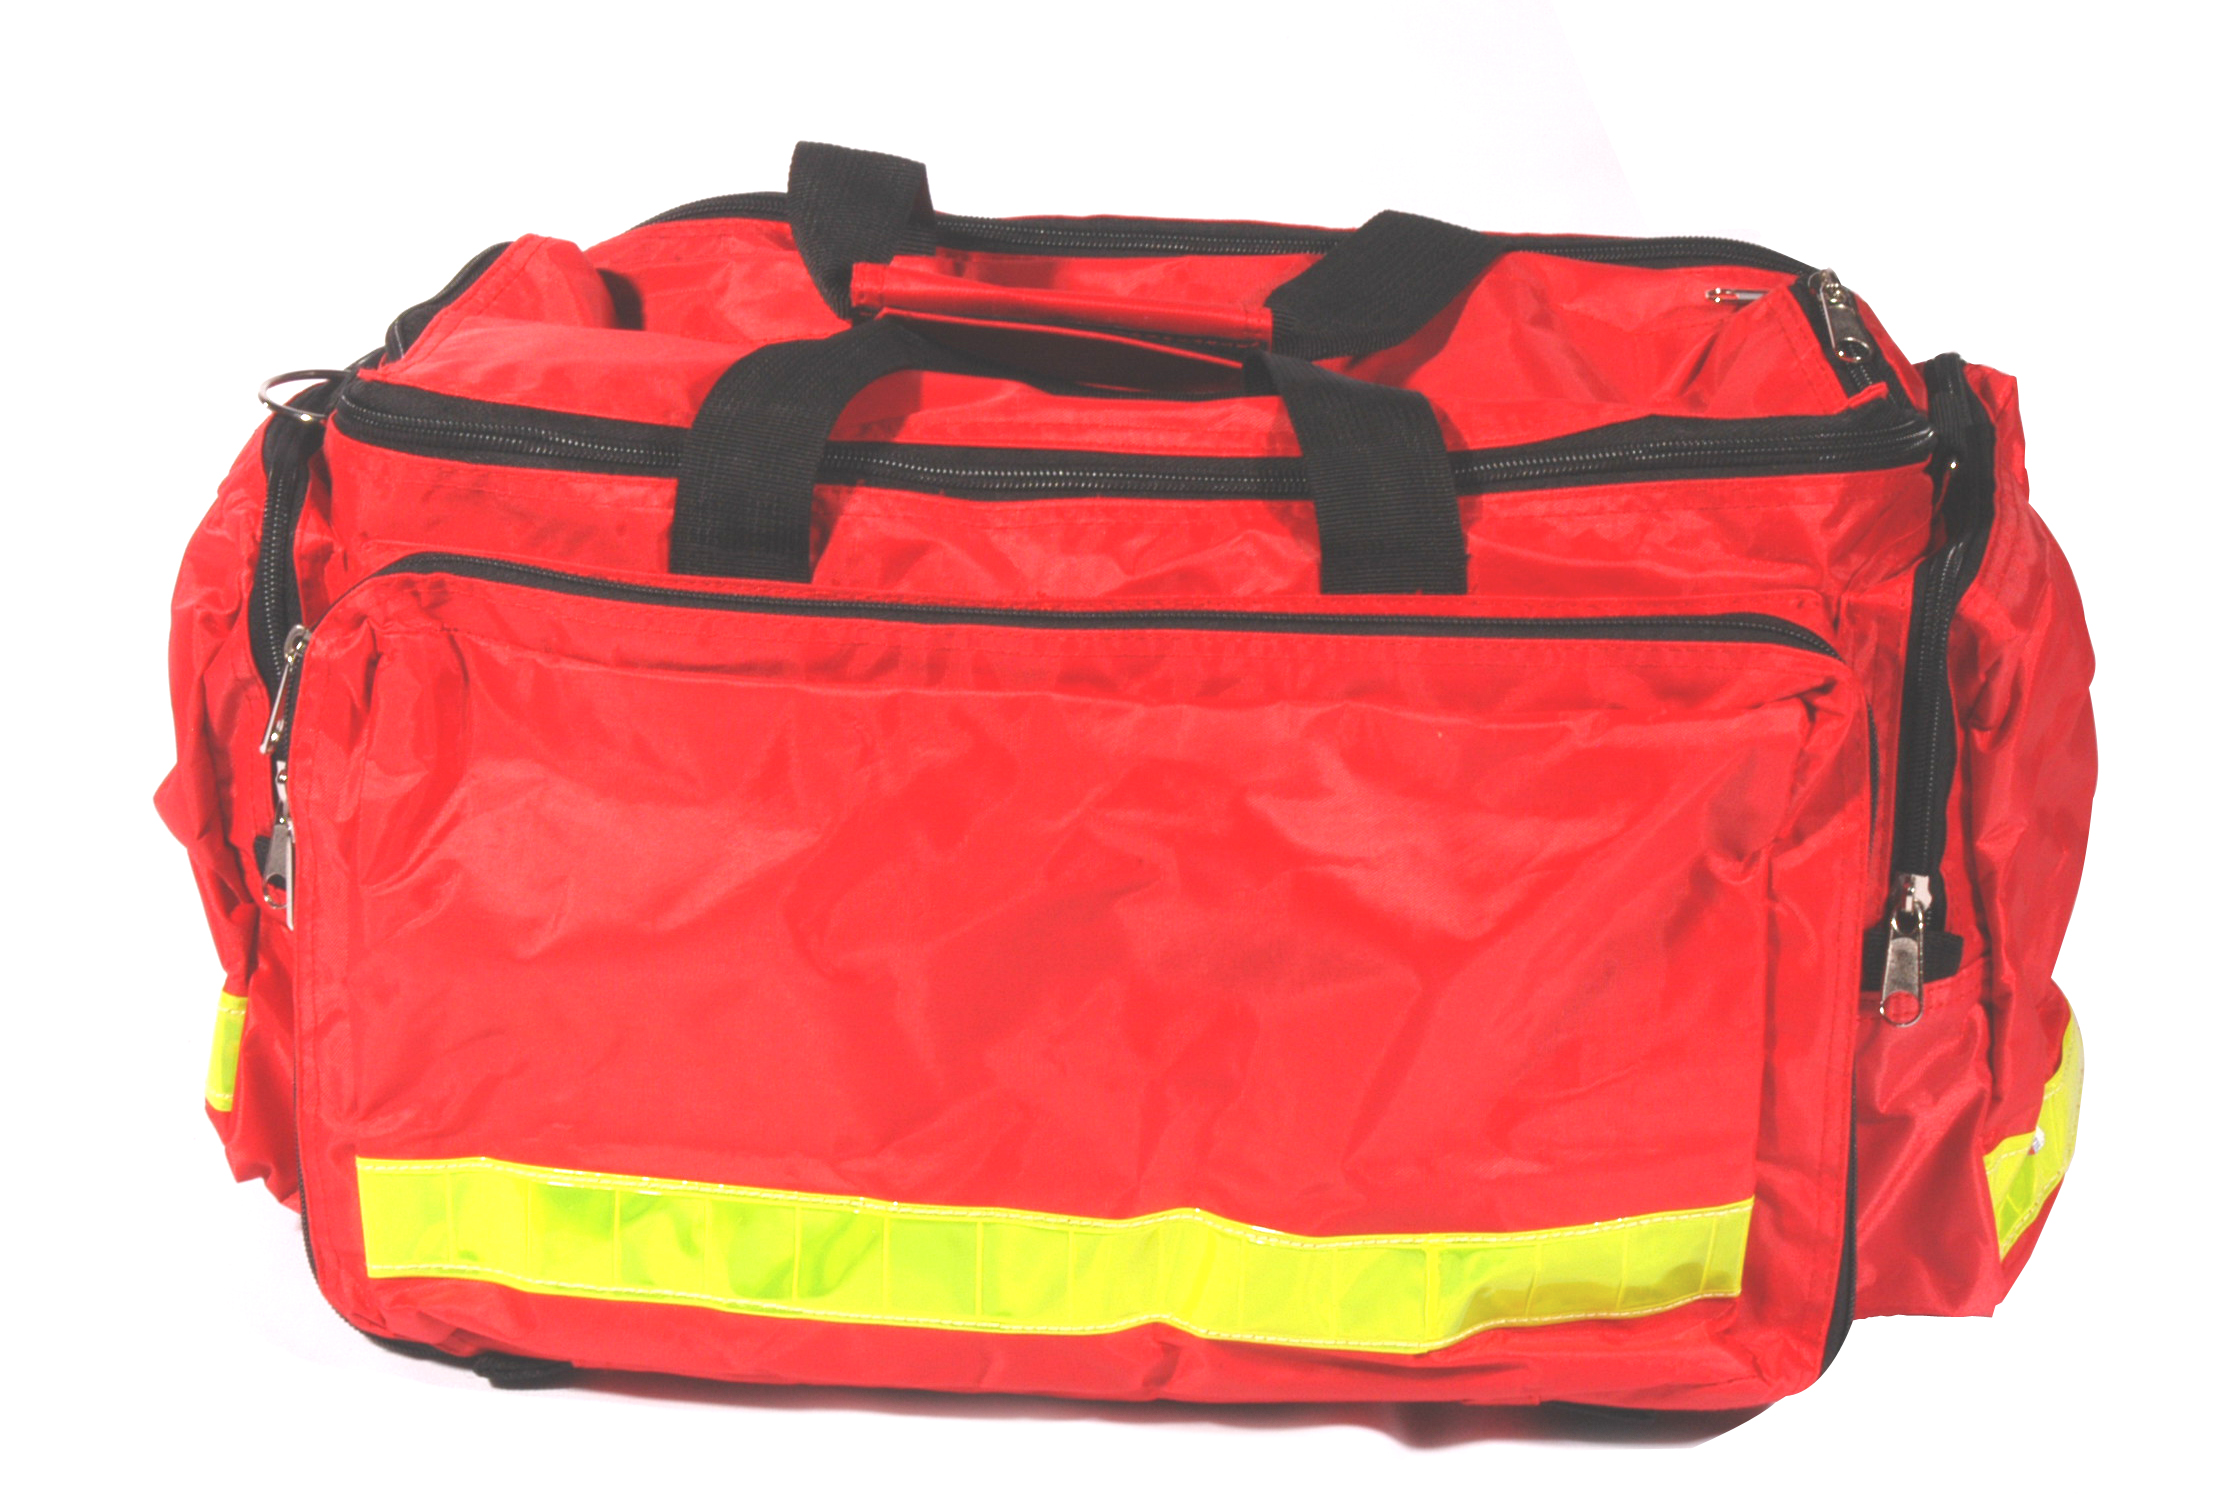 EMT Trauma Bag image